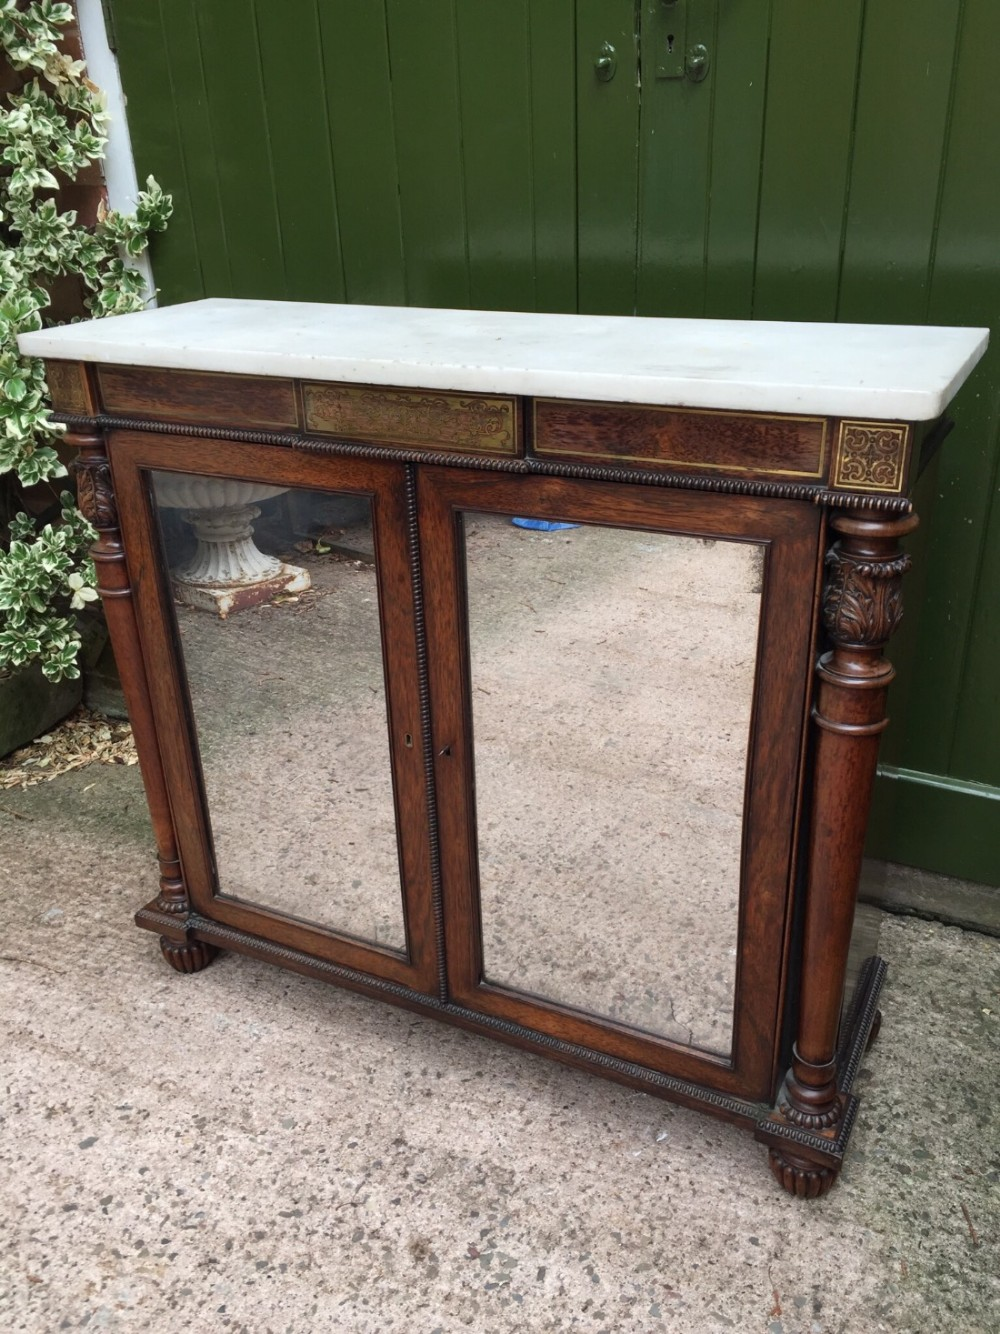 fine early c19th george iv period brassinlaid rosewood side cabinetdwarf bookcase with marble top attributed to gillows of lancaster